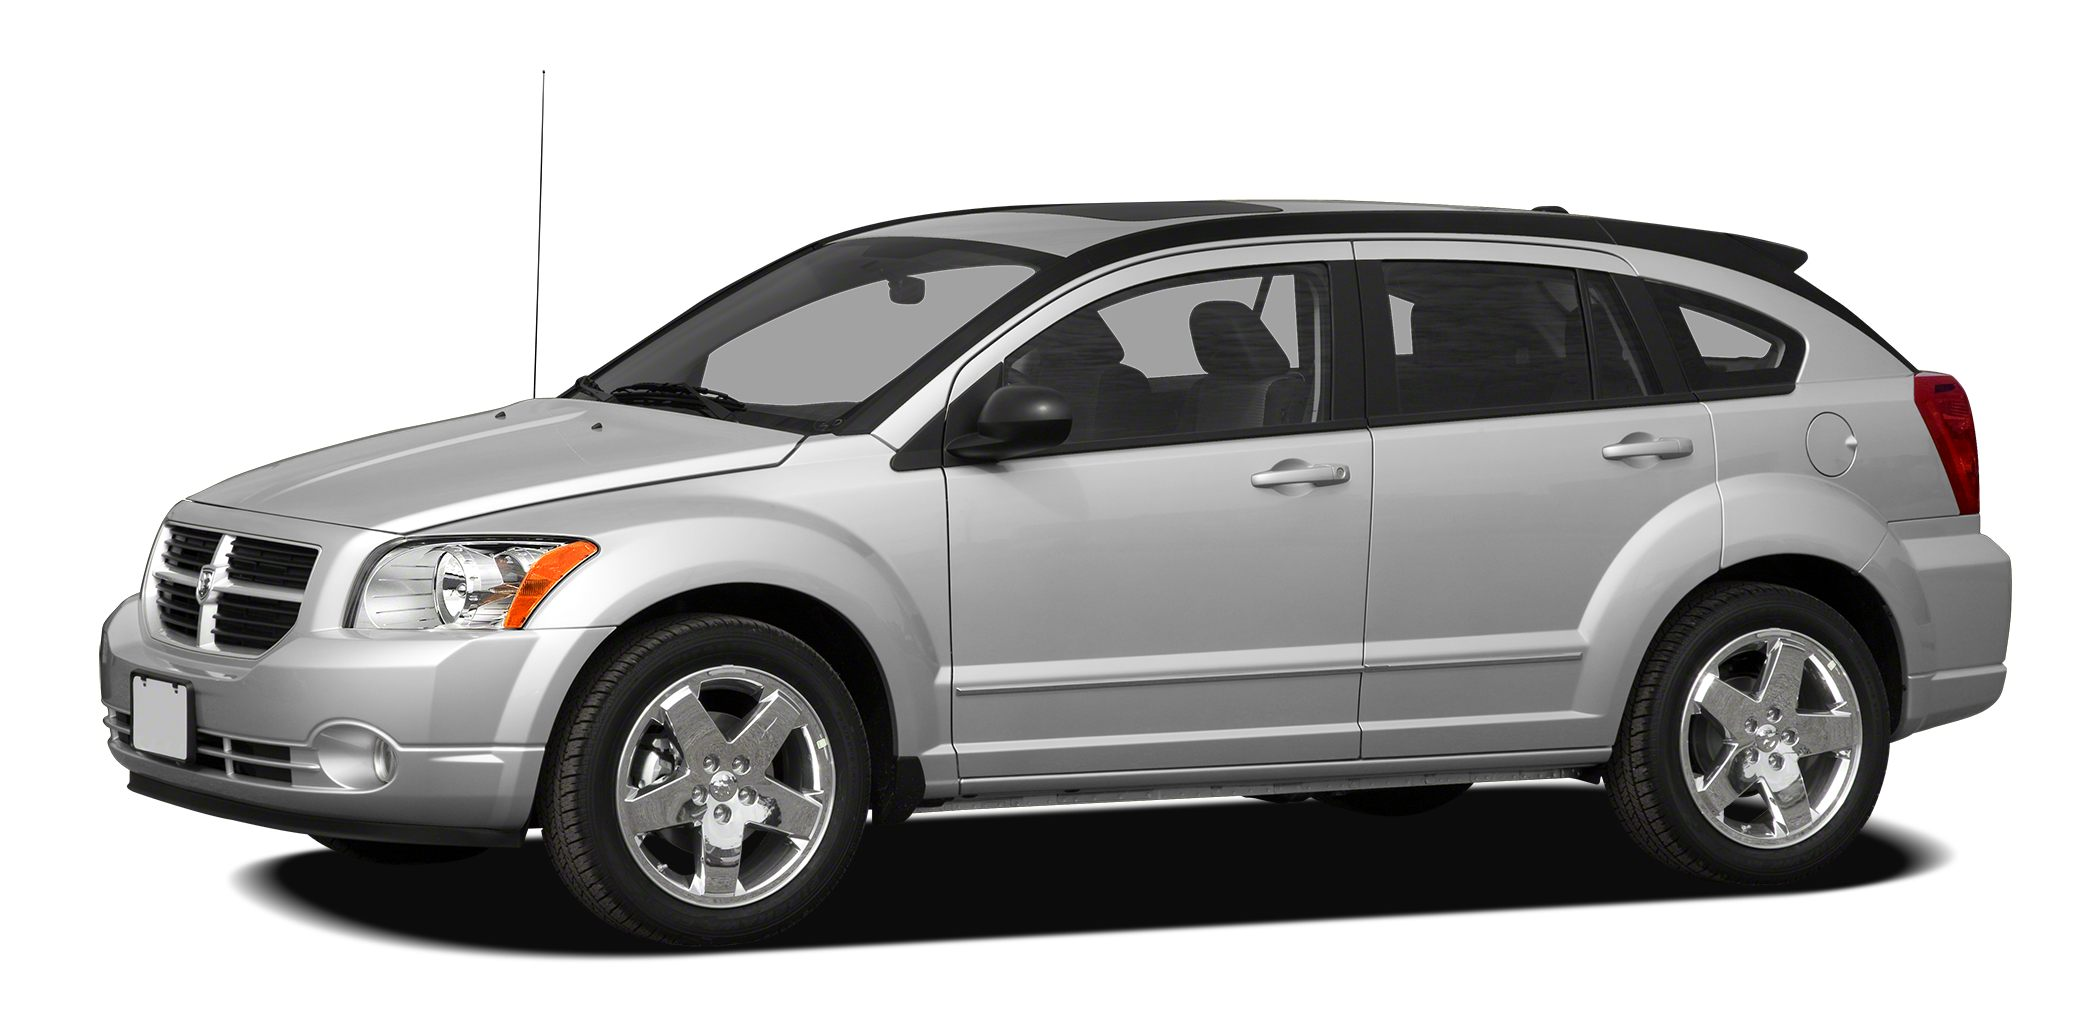 2011 Dodge Caliber Mainstreet GREAT MILES 51100 12000 Mile Warranty FUEL EFFICIENT 27 MPG Hwy